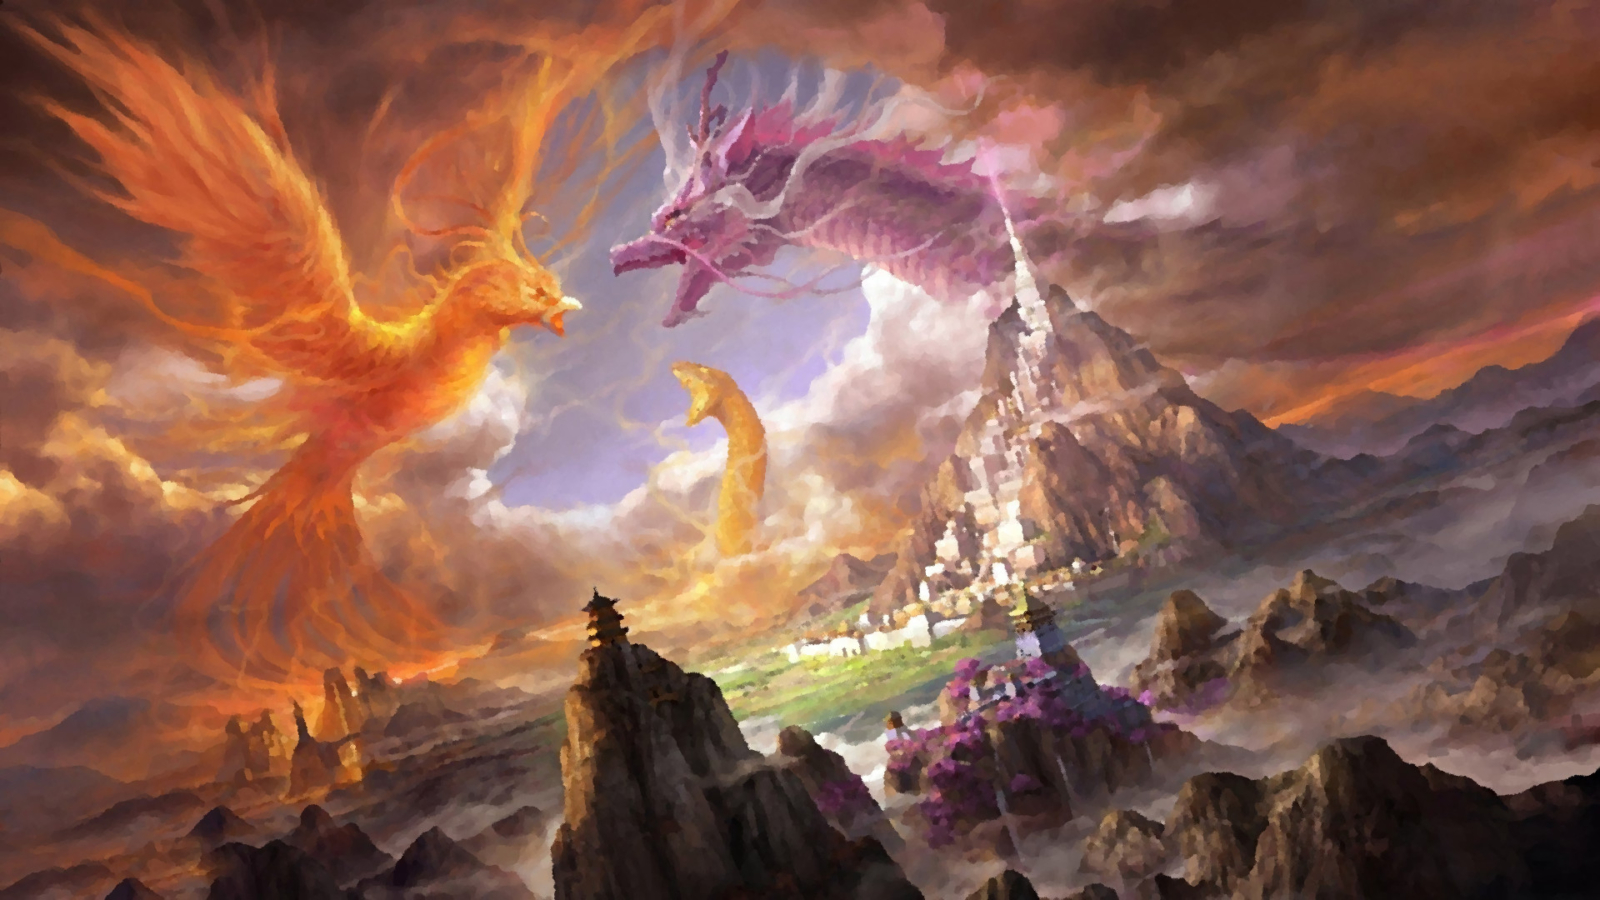 City, Castle, Mountain, Phoenix, Dragon, Snake